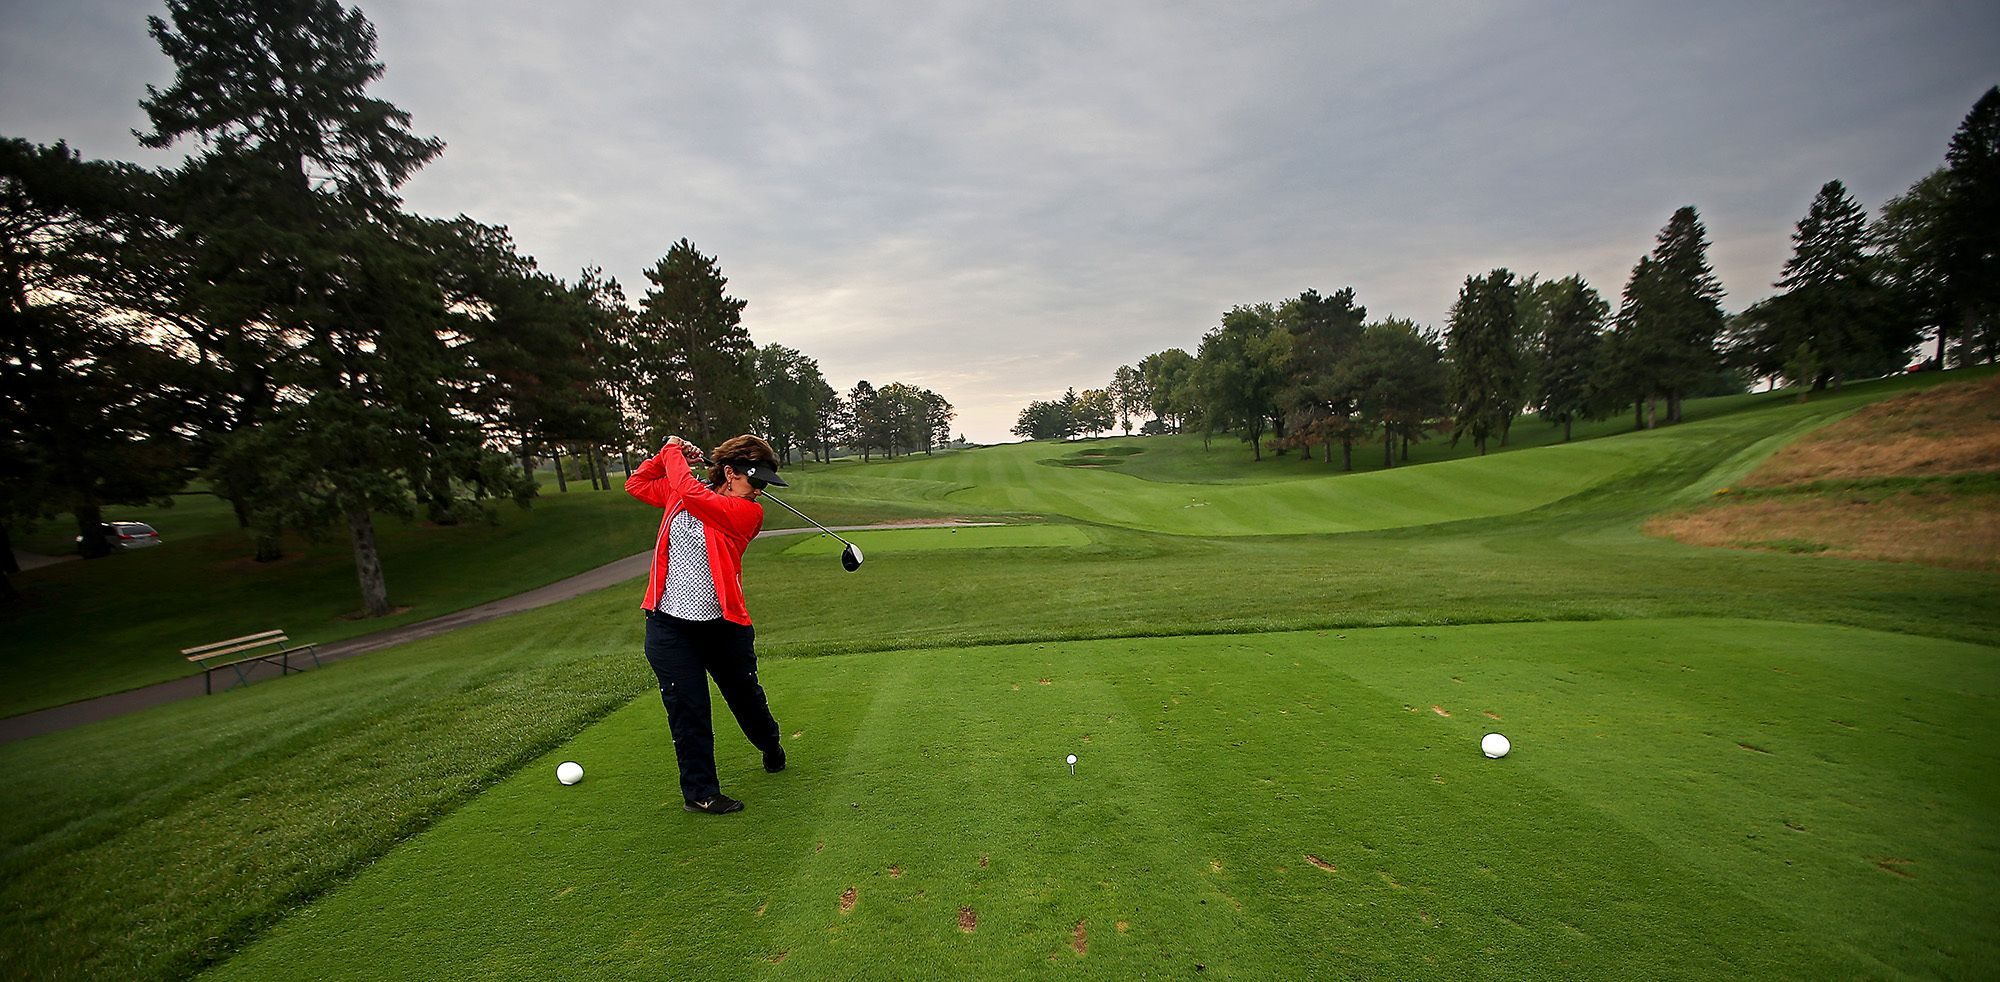 Golf Lessons Houston and Helpful Tips To Improve Your Golf